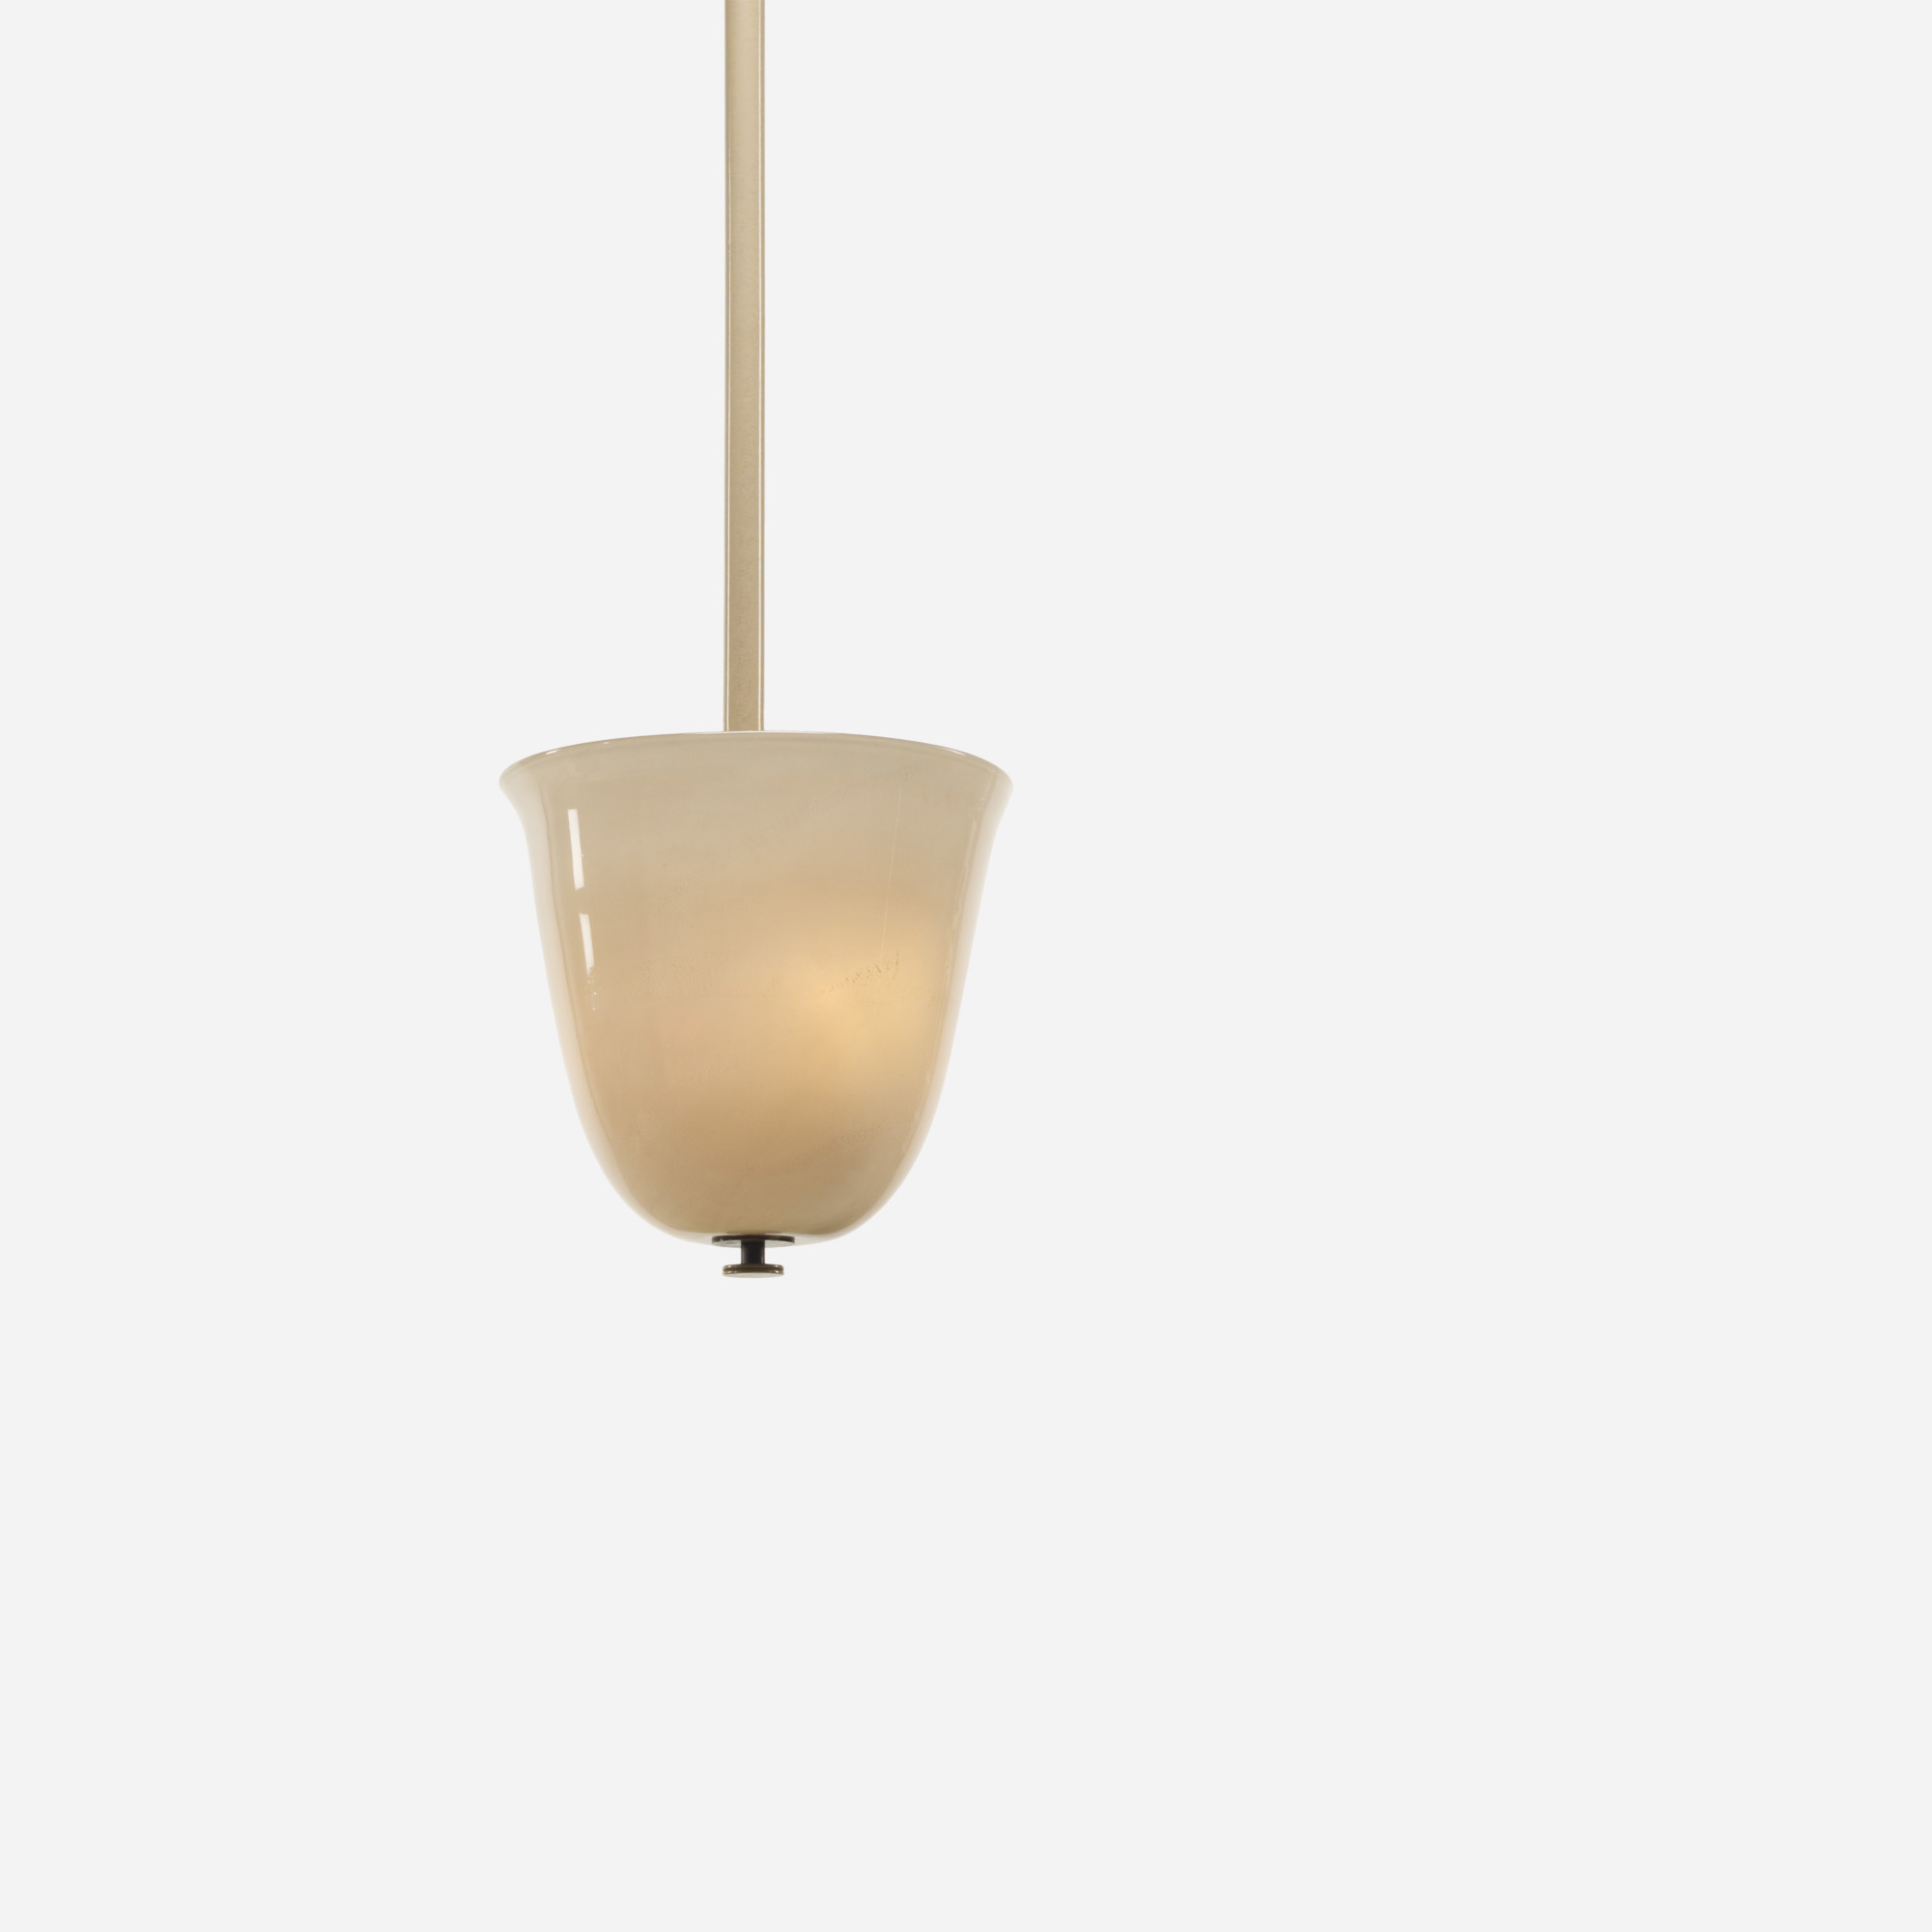 Buzzi & Buzzi Lighting 242: tomaso buzzi, pendant lamp, model 5229 < living